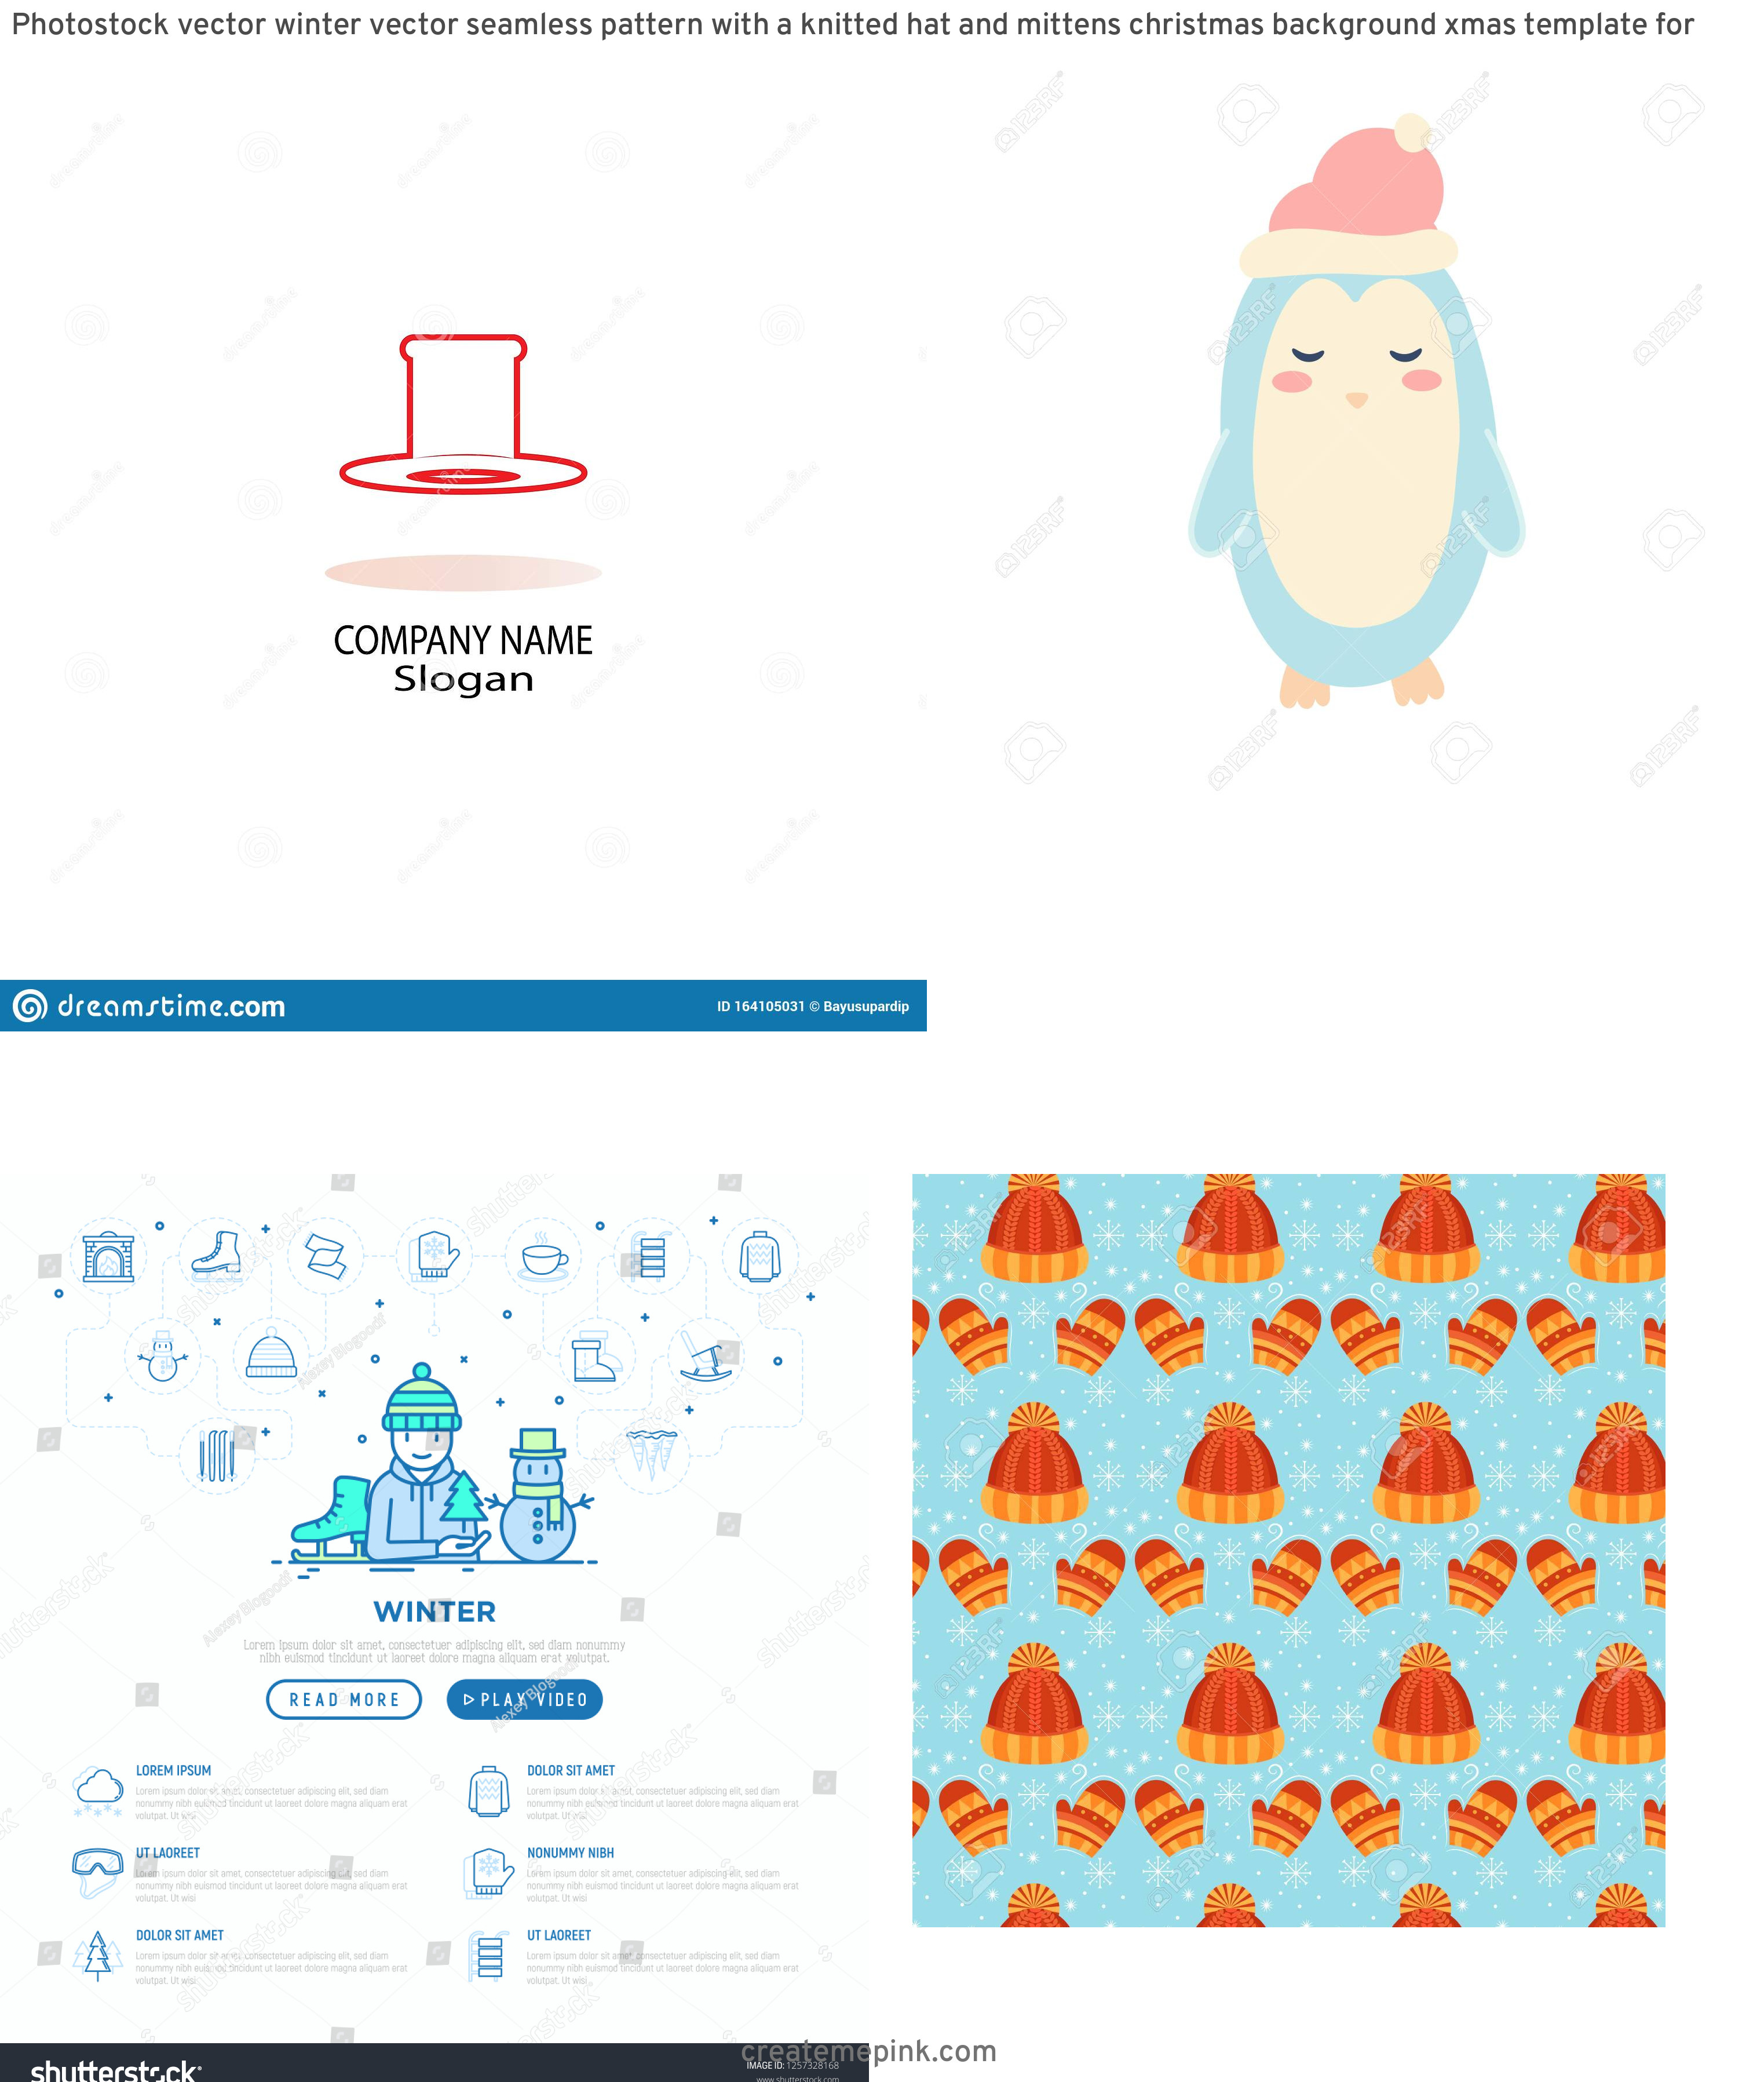 Winter Hat Vectors Templates: Photostock Vector Winter Vector Seamless Pattern With A Knitted Hat And Mittens Christmas Background Xmas Template For